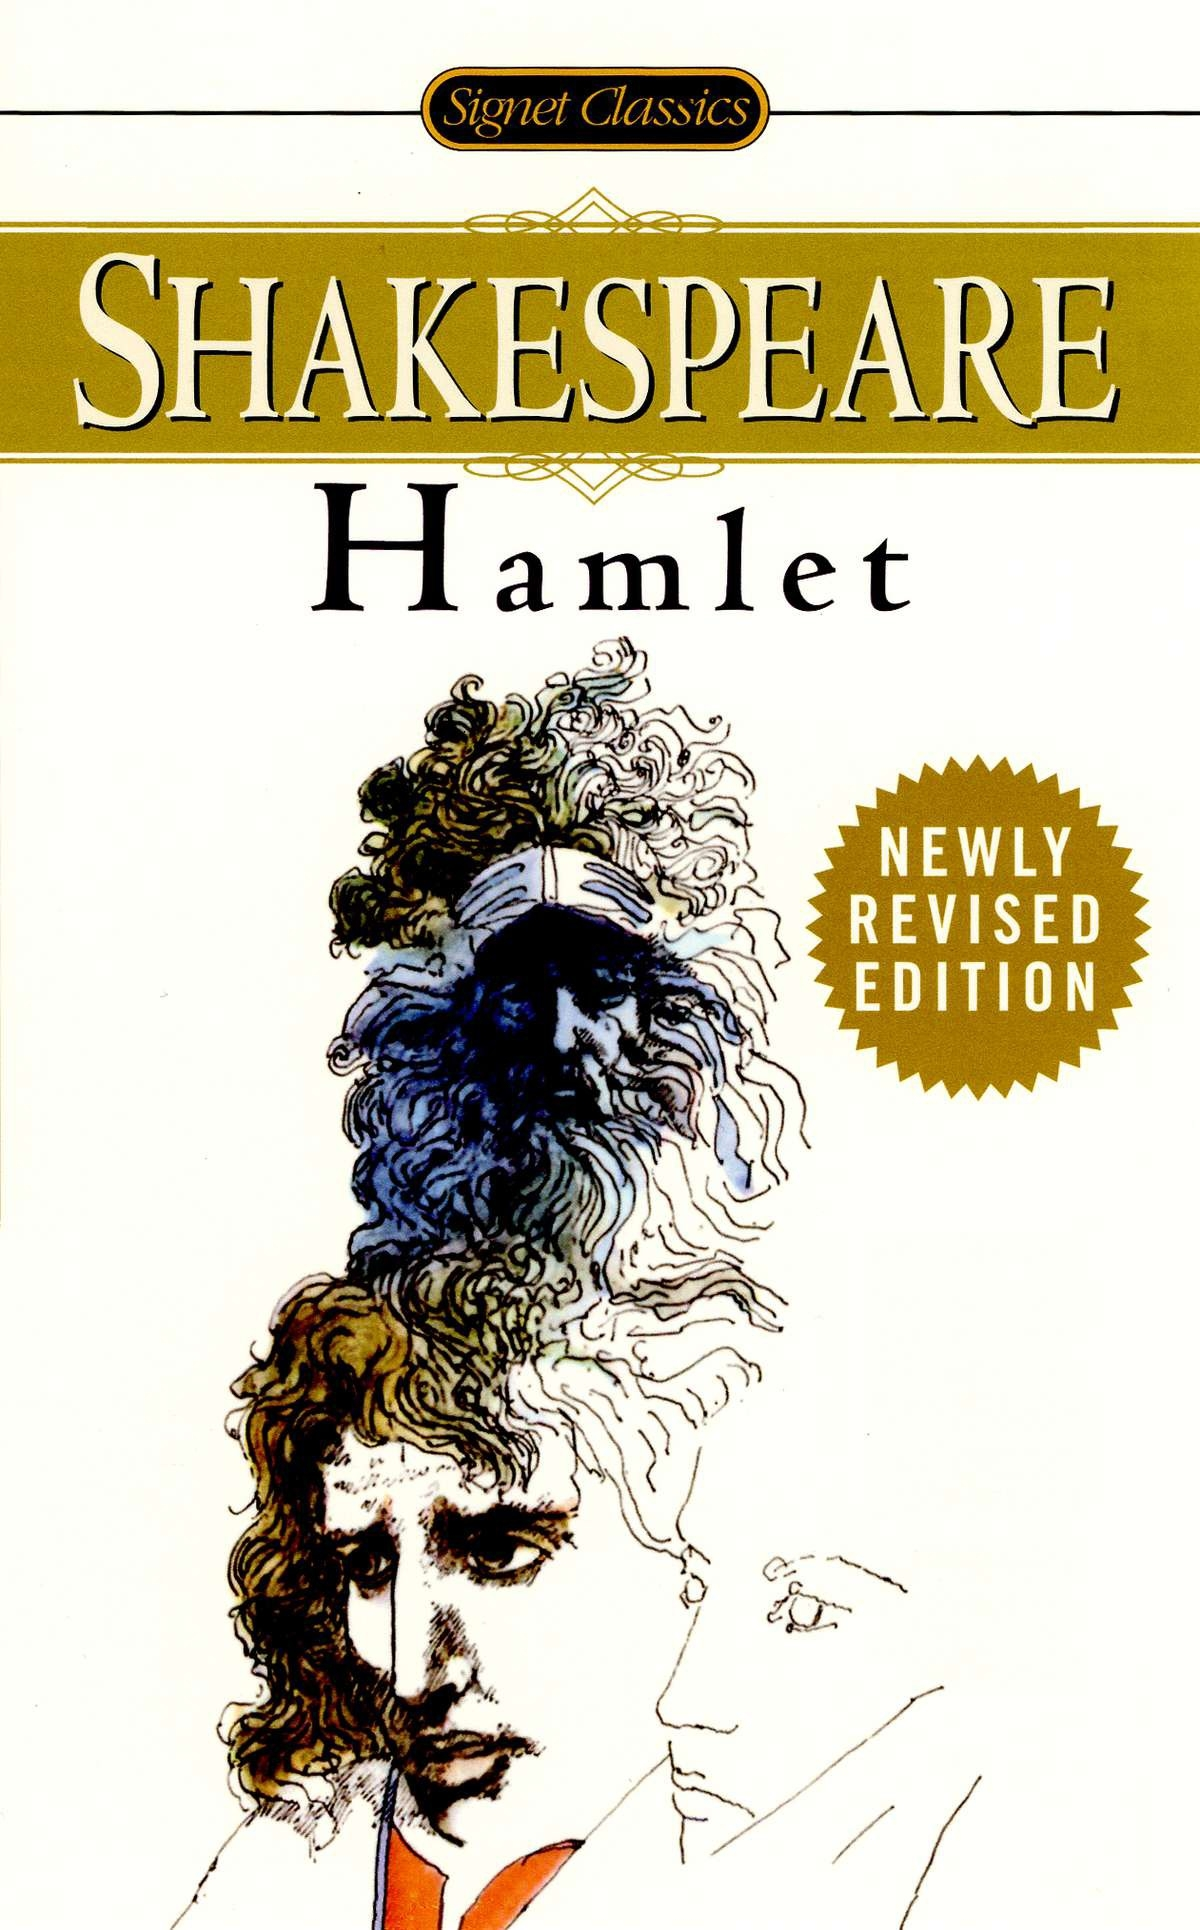 an analysis of claudius responsibility for tragedy in hamlet by william shakespeare Hamlet study guide contains a biography of william shakespeare, literature essays, a complete e-text, quiz questions, major themes, characters, and a full summary and analysis.